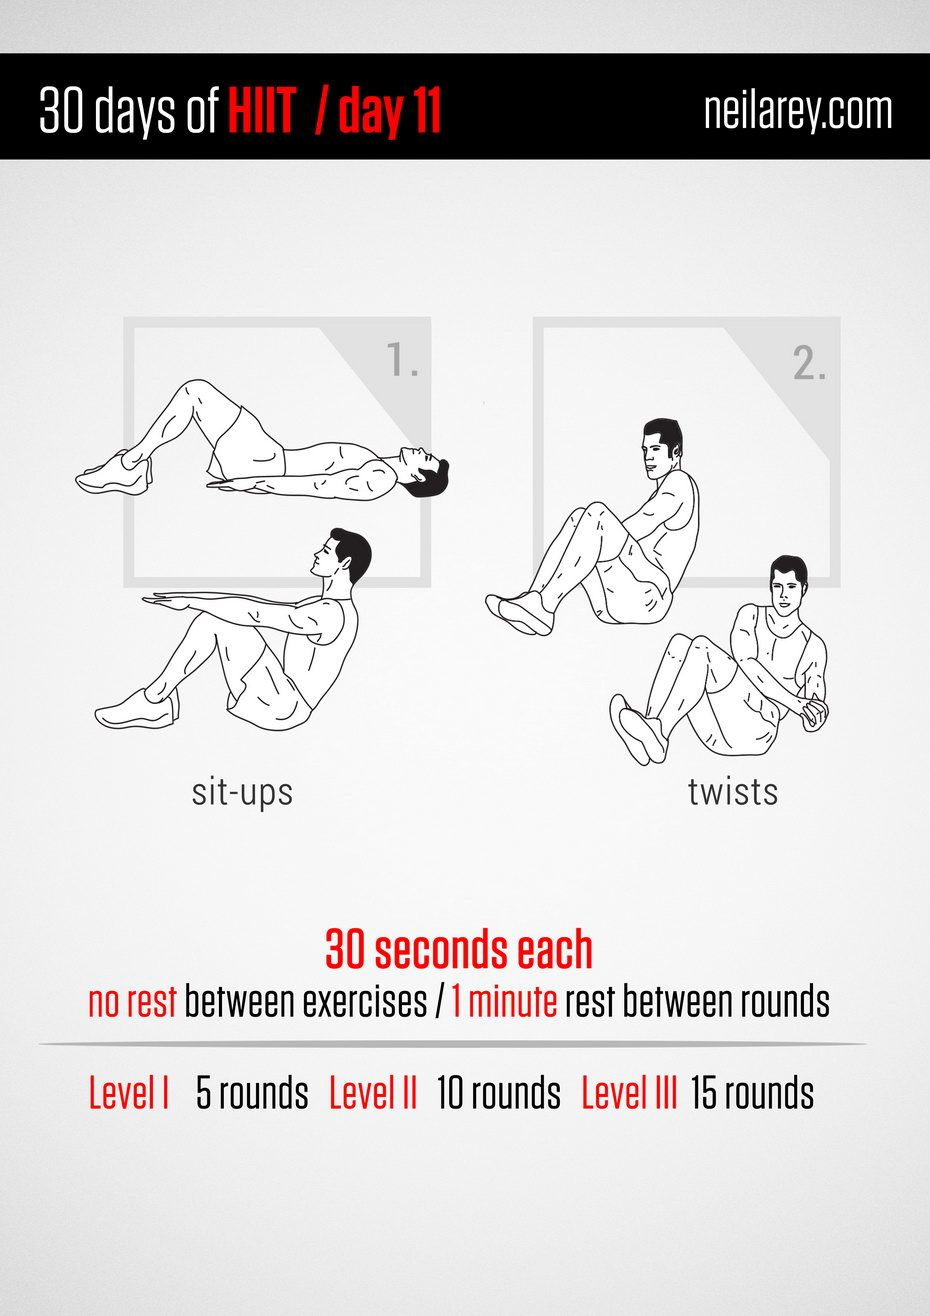 30 Days of HIIT / Day 11